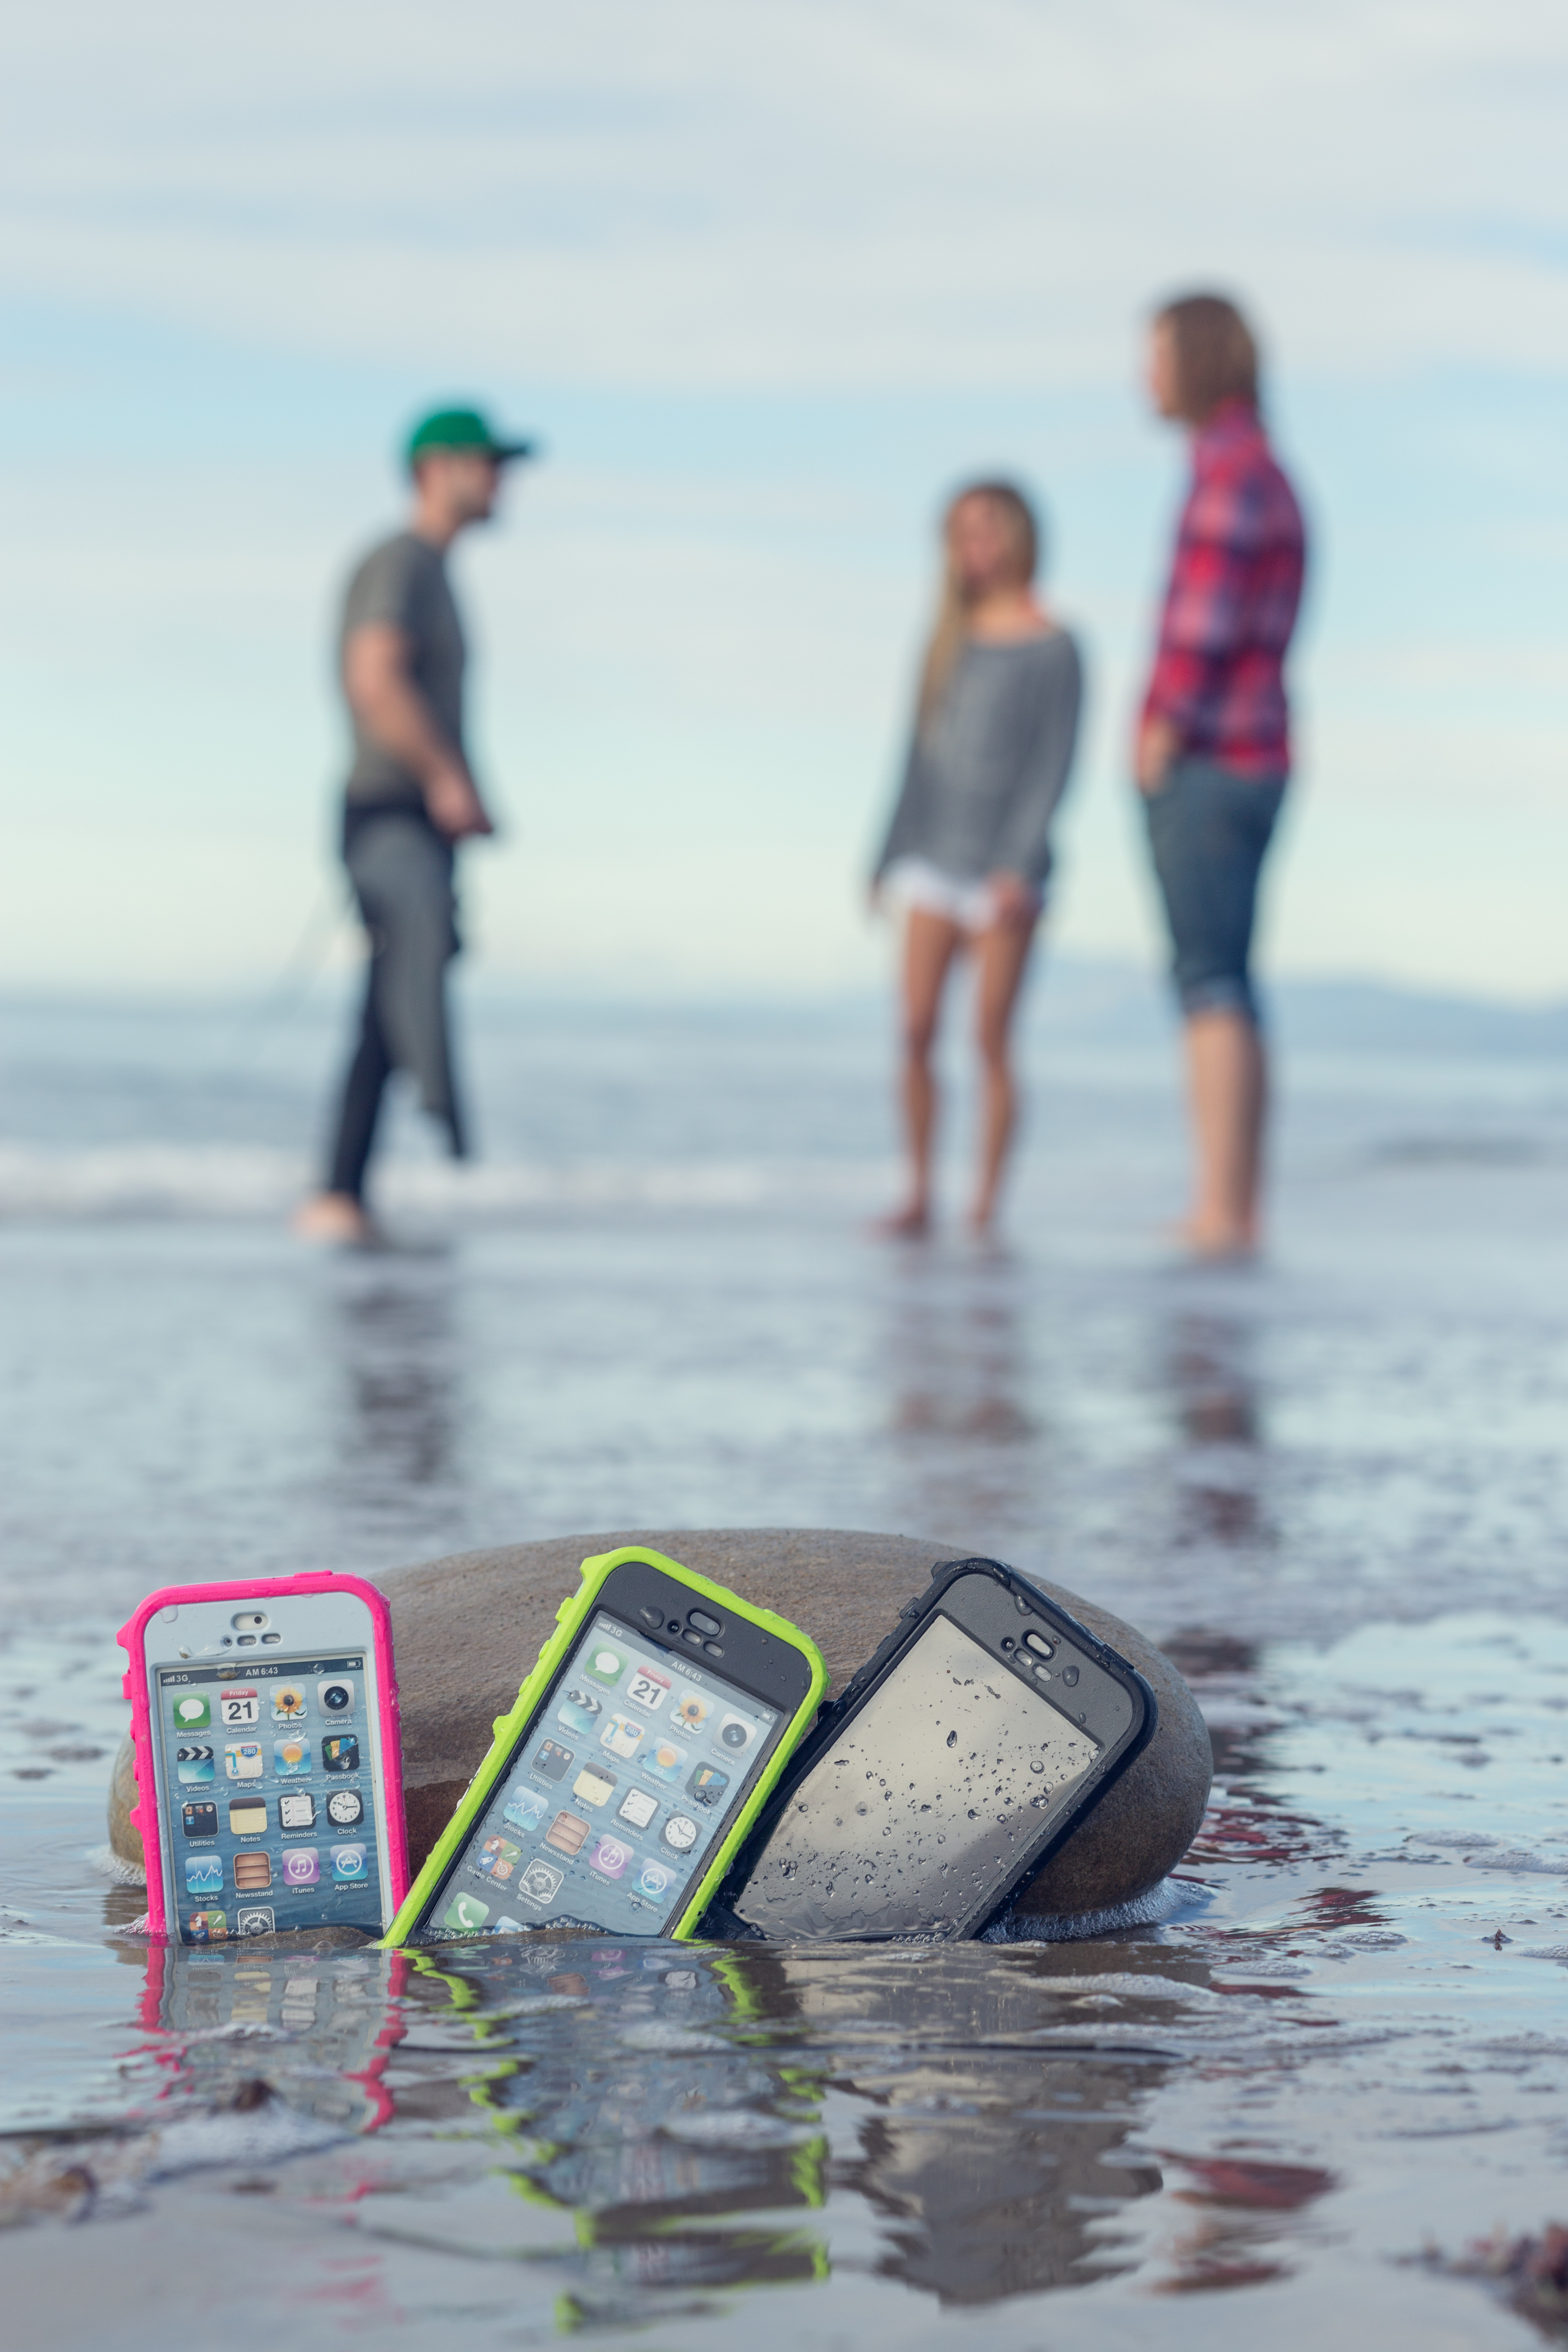 OtterBox-11-23-2013-Surfer-Selects-0044-hires